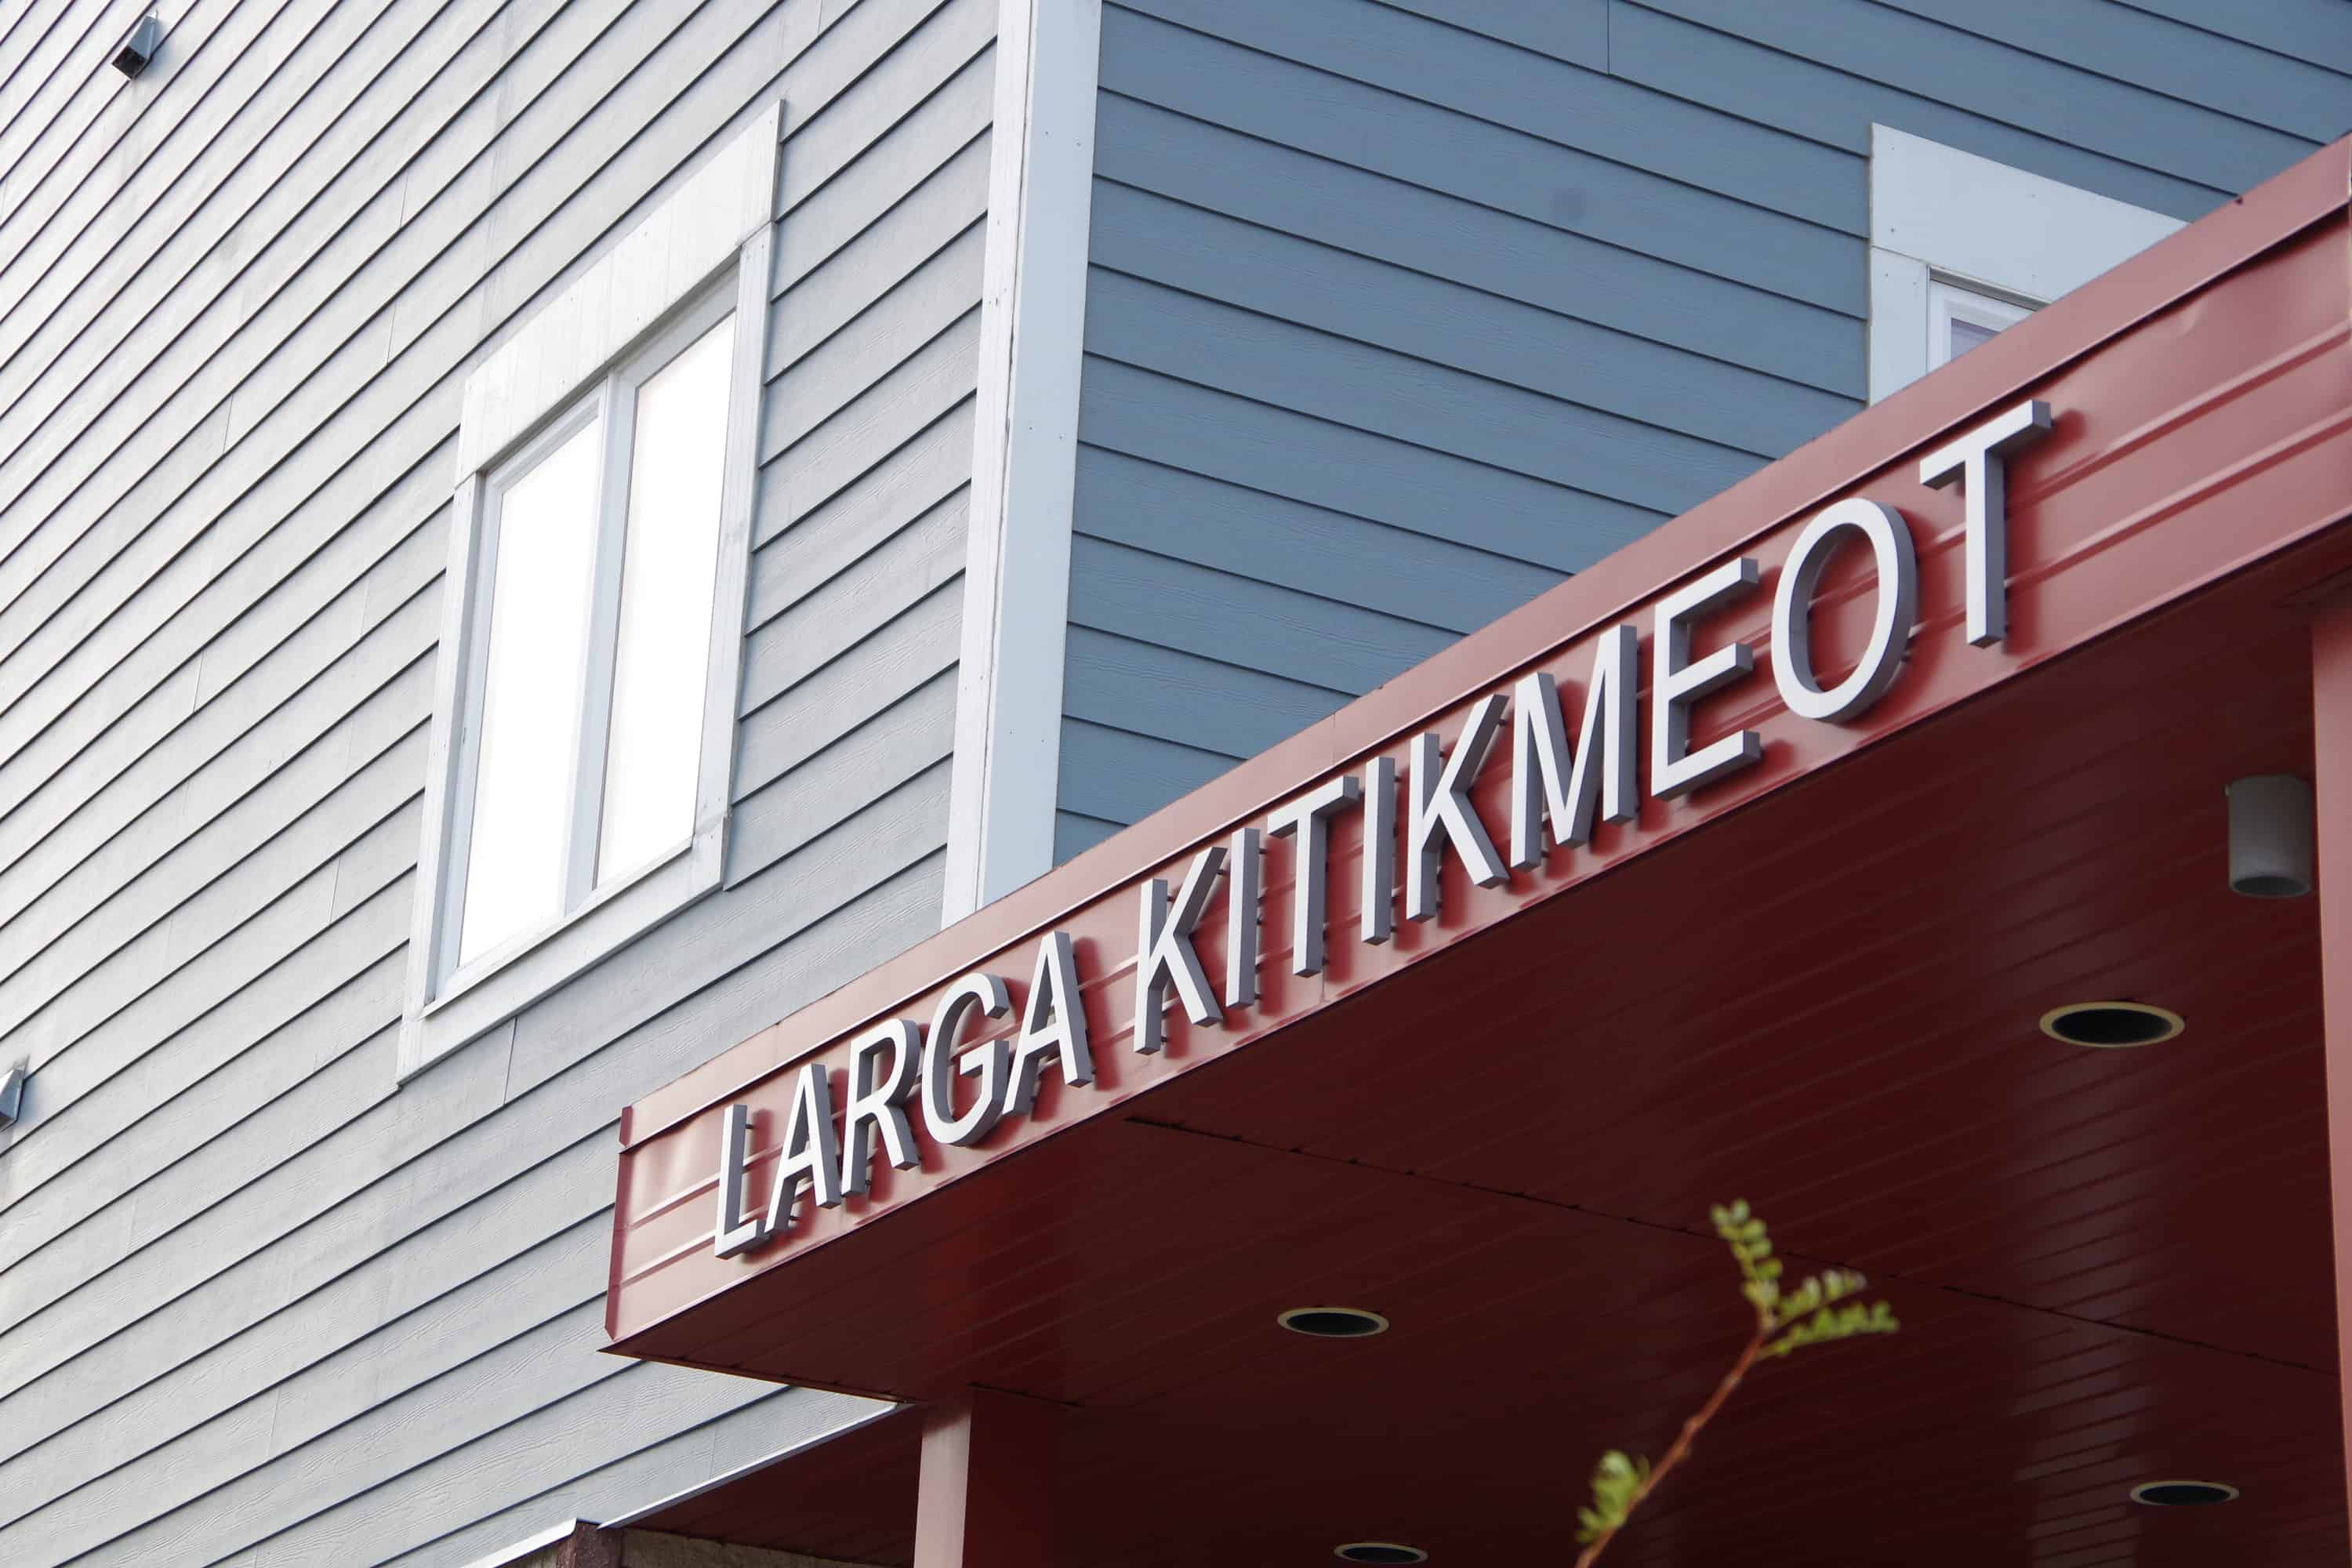 Covid-19 warning issued for some Larga Kitikmeot travellers